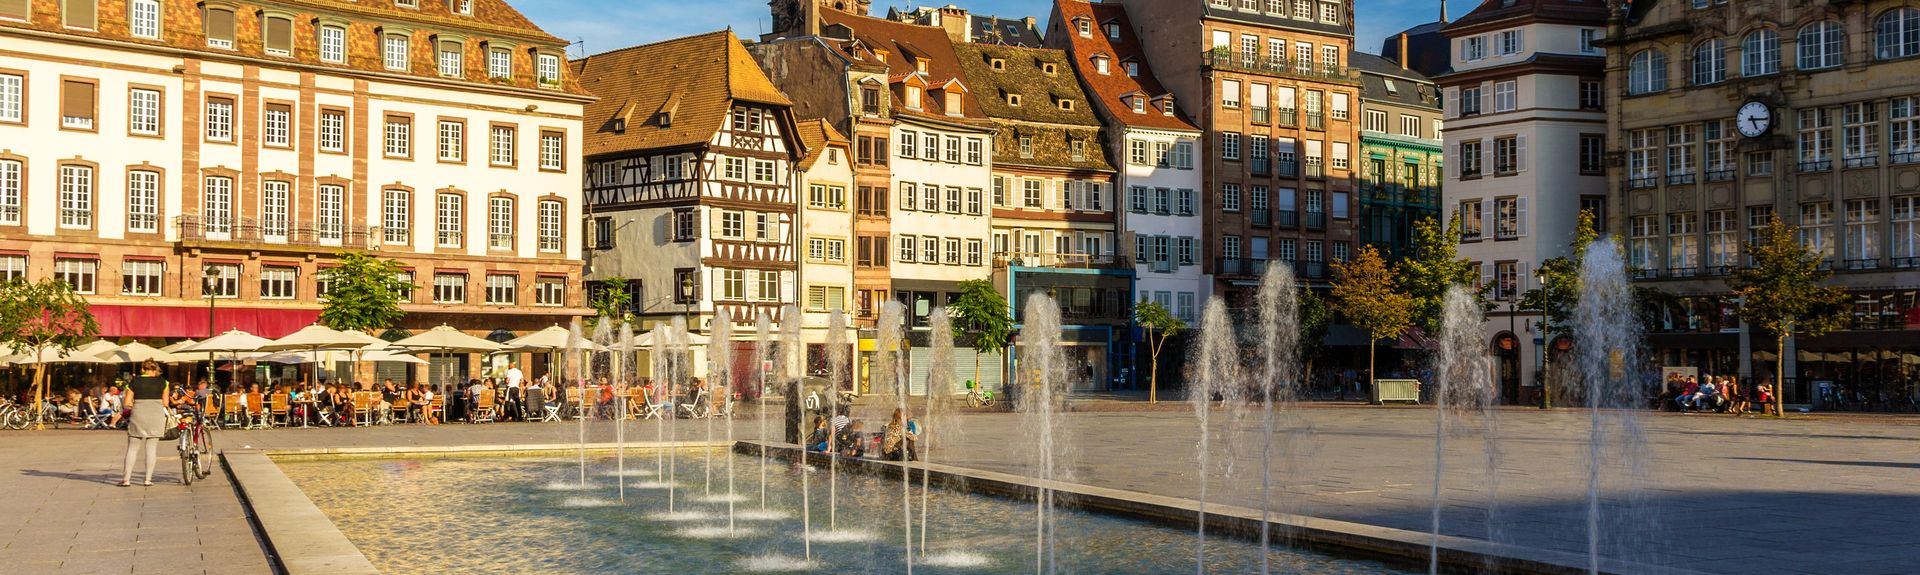 France Literie Strasbourg Strasbourg Fr Vacation Rentals Condos Apartments More Homeaway